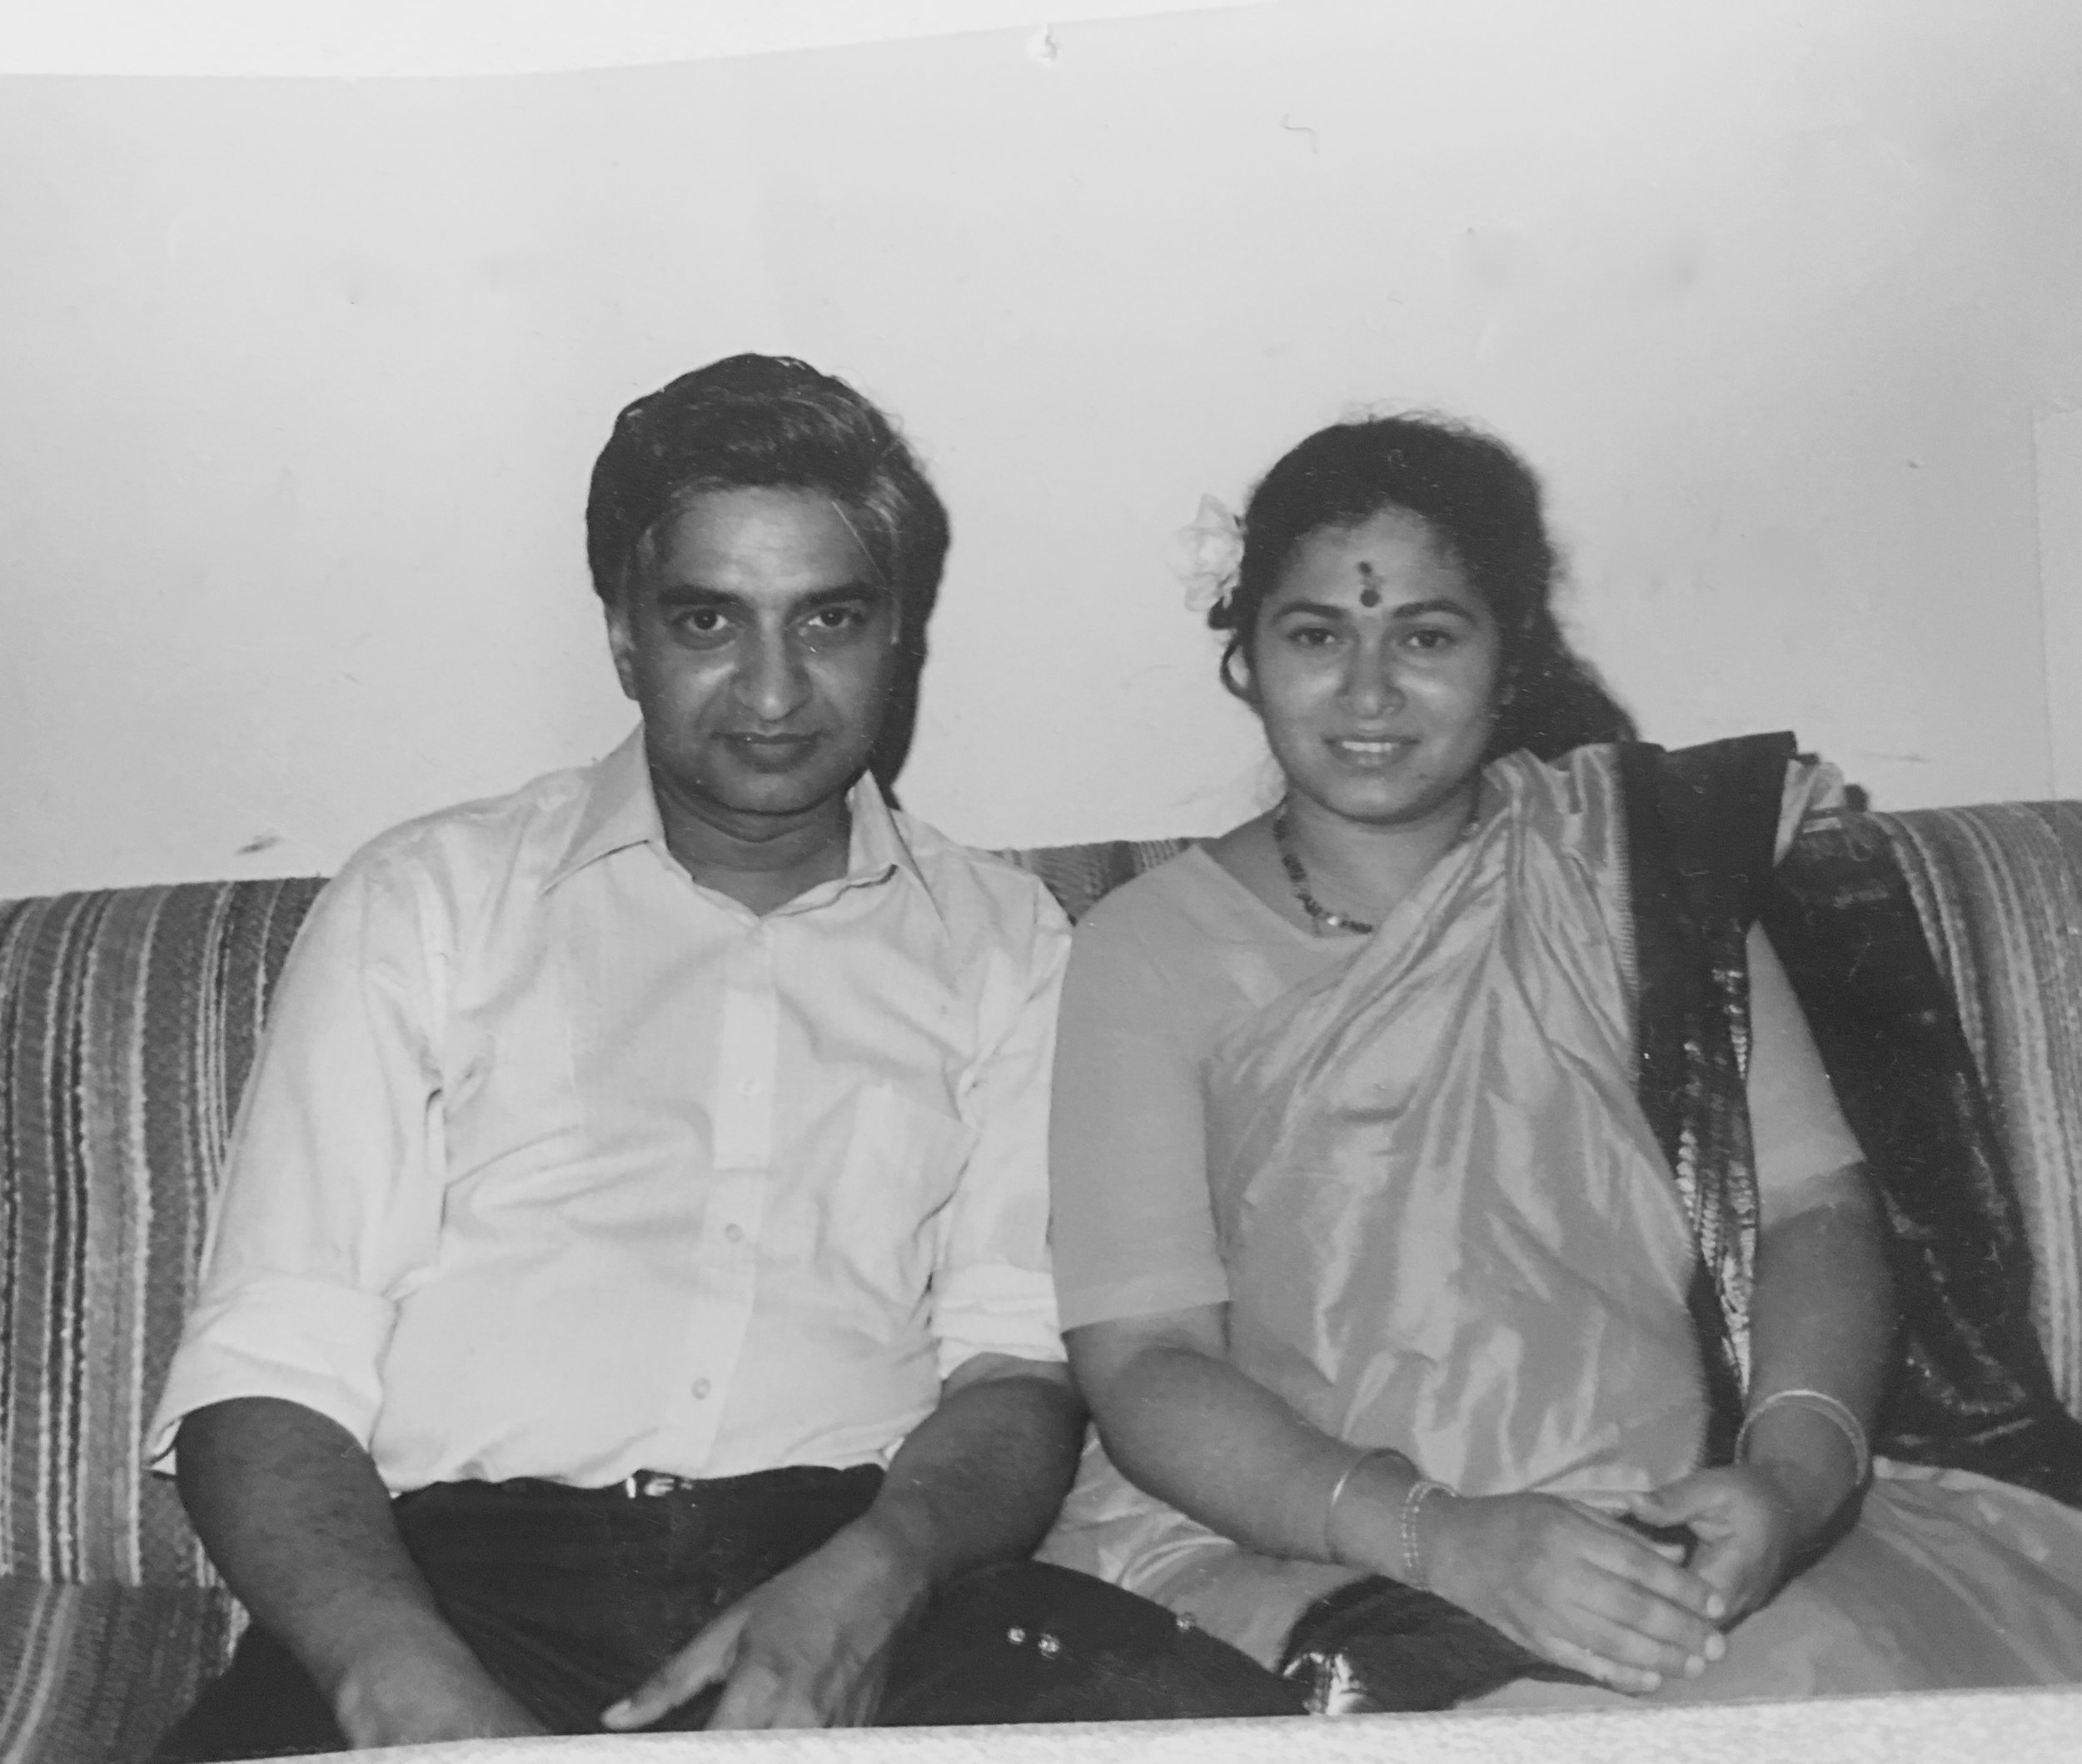 Ram and Nayana Krishnan  (Photo is provided as a courtesy to The $8 Man and is the property of Nayana and Ram Krishnan)